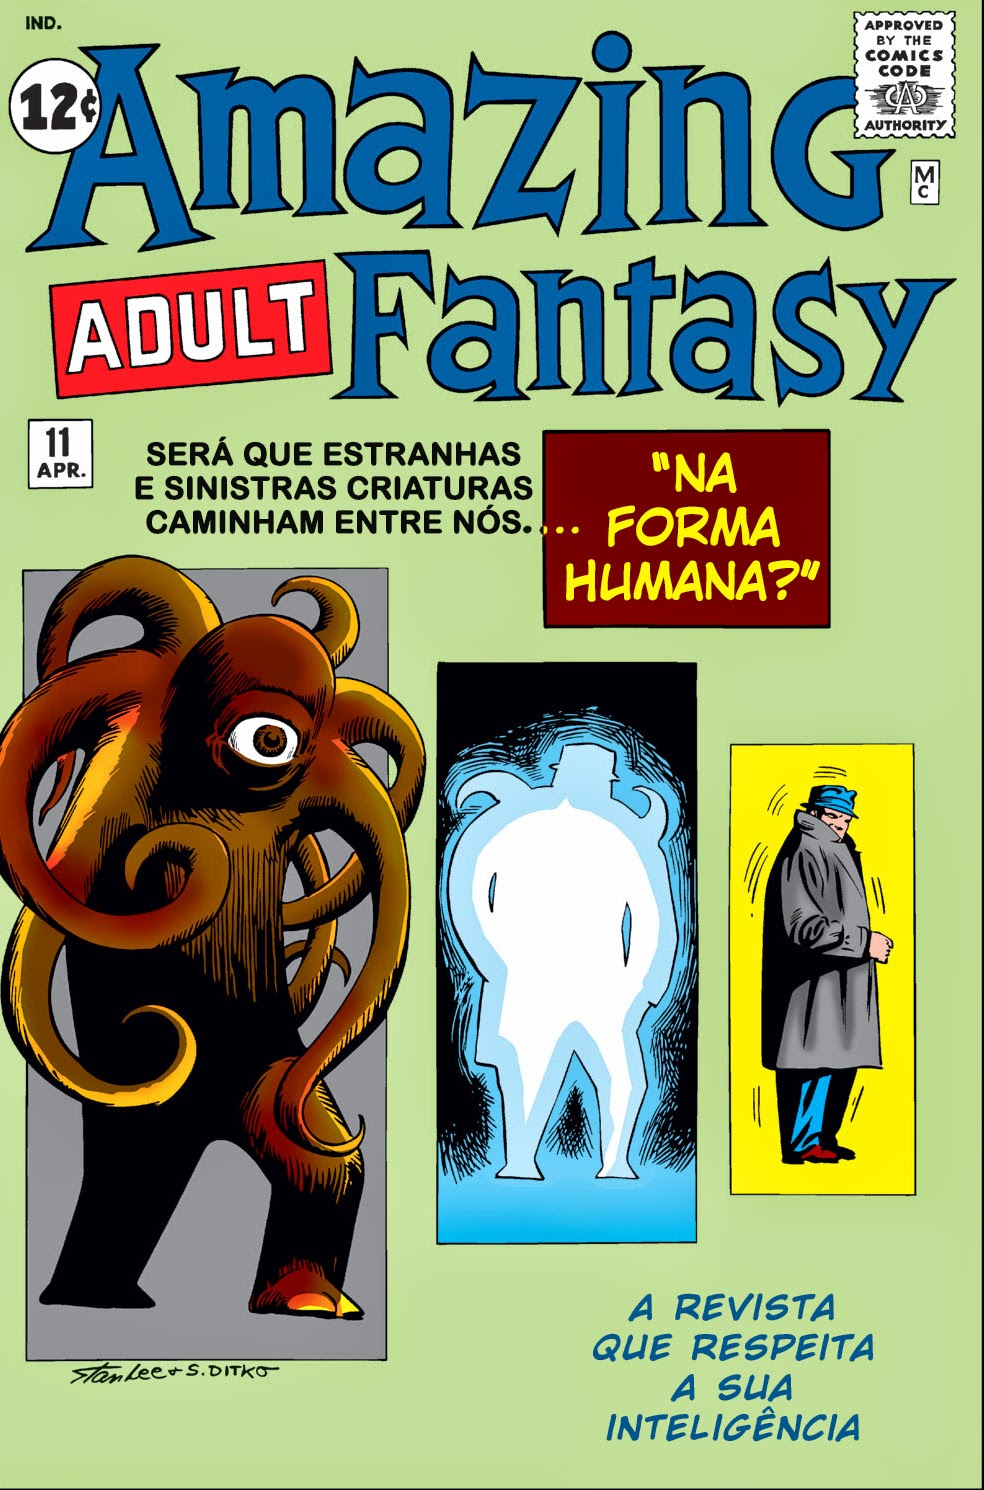 picture Adult fantasy